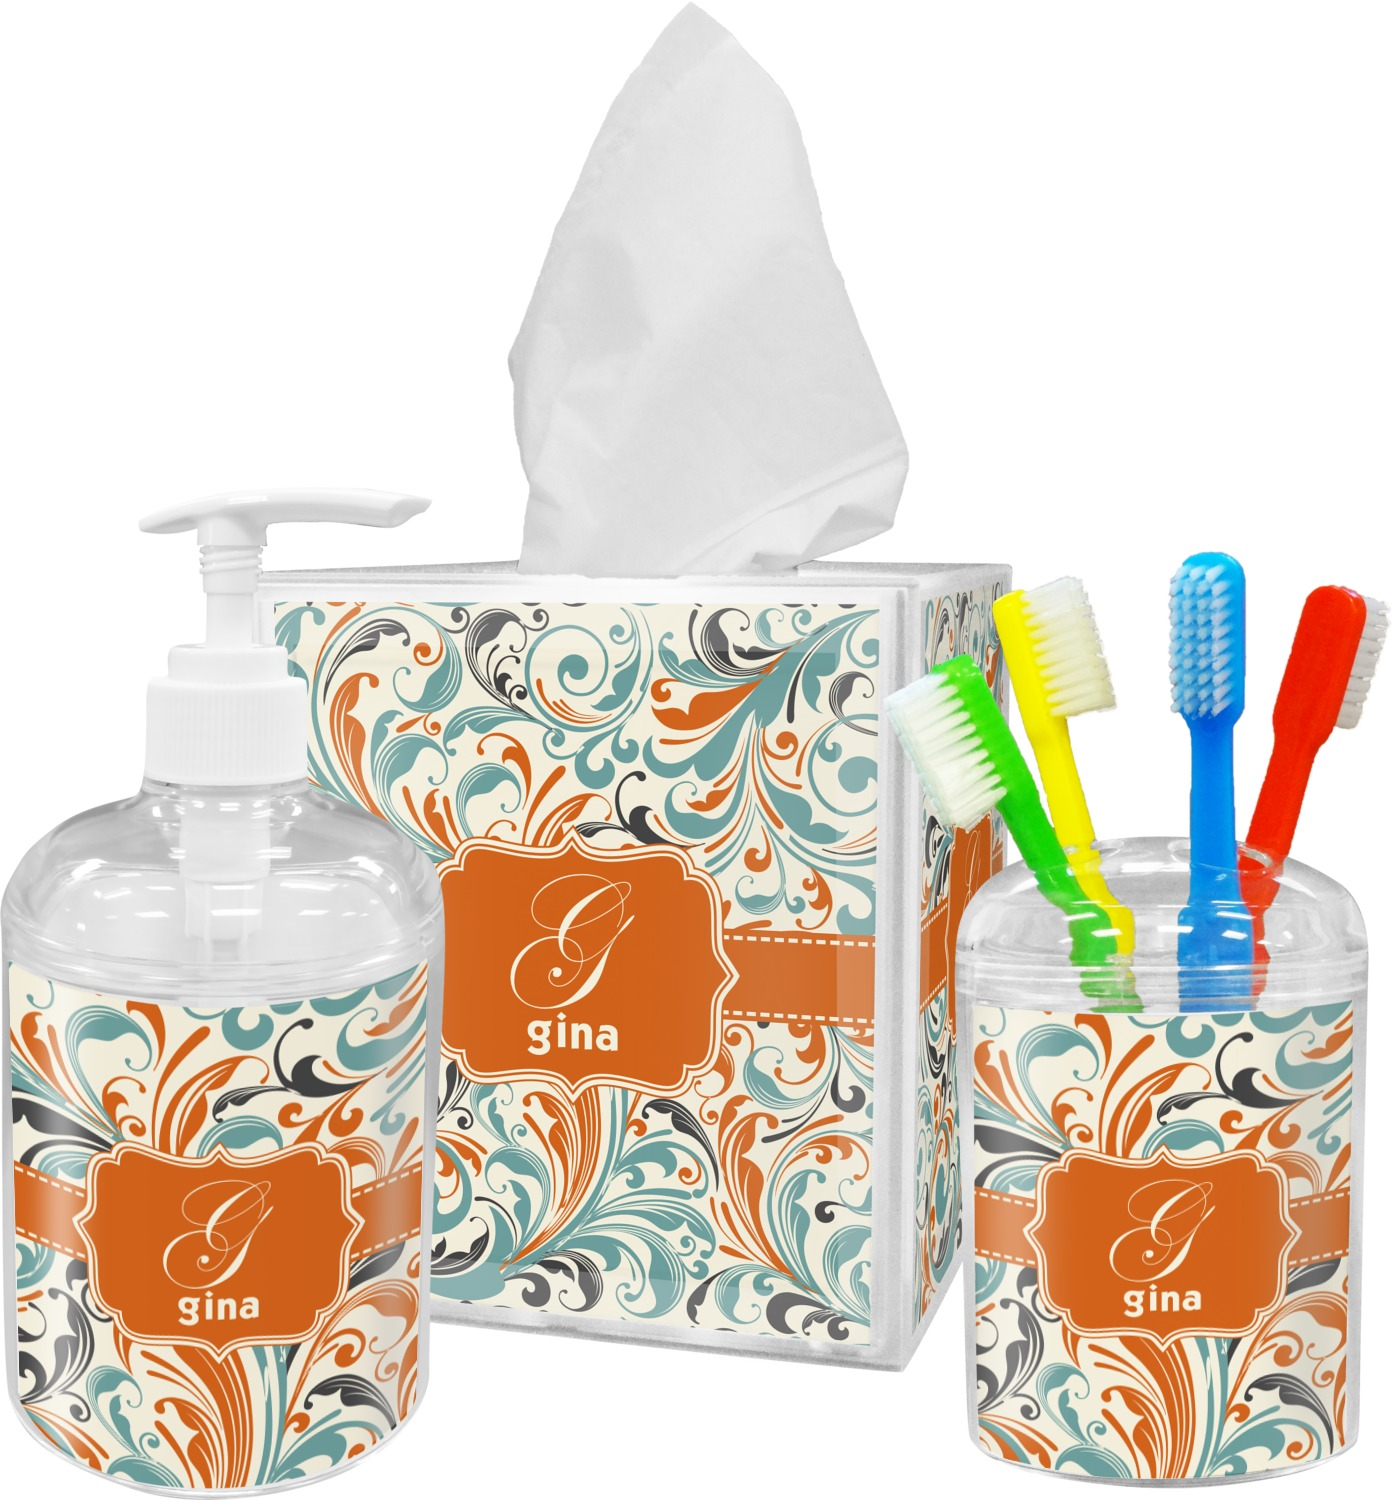 Orange blue leafy swirls bathroom accessories set - Monogrammed bathroom accessories ...